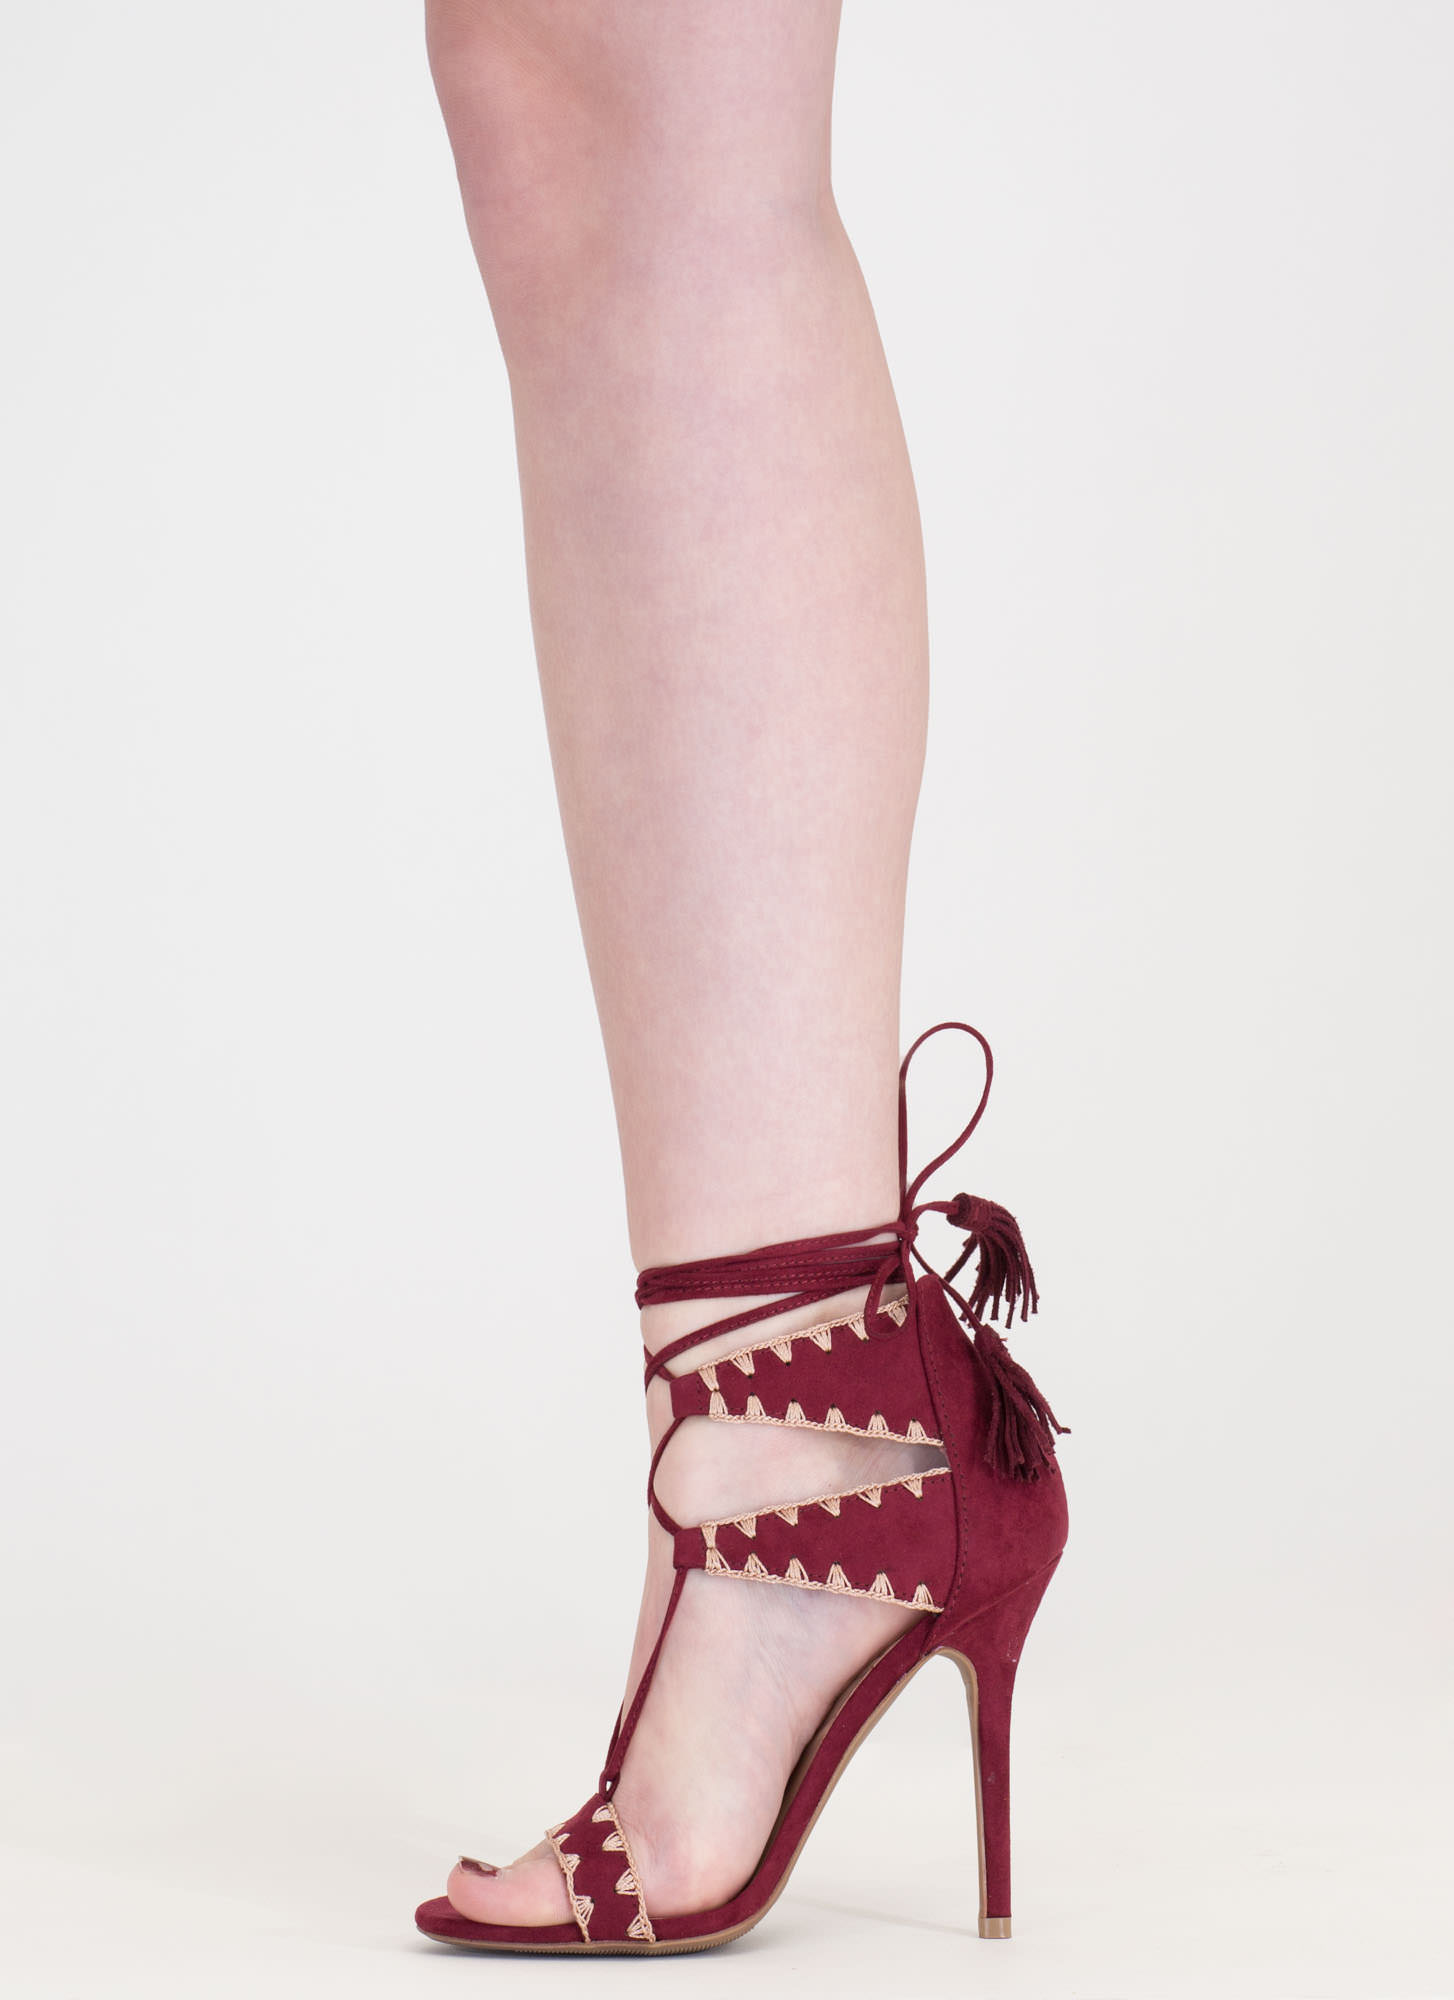 Embroider Away Tasseled Lace-Up Heels BURGUNDY